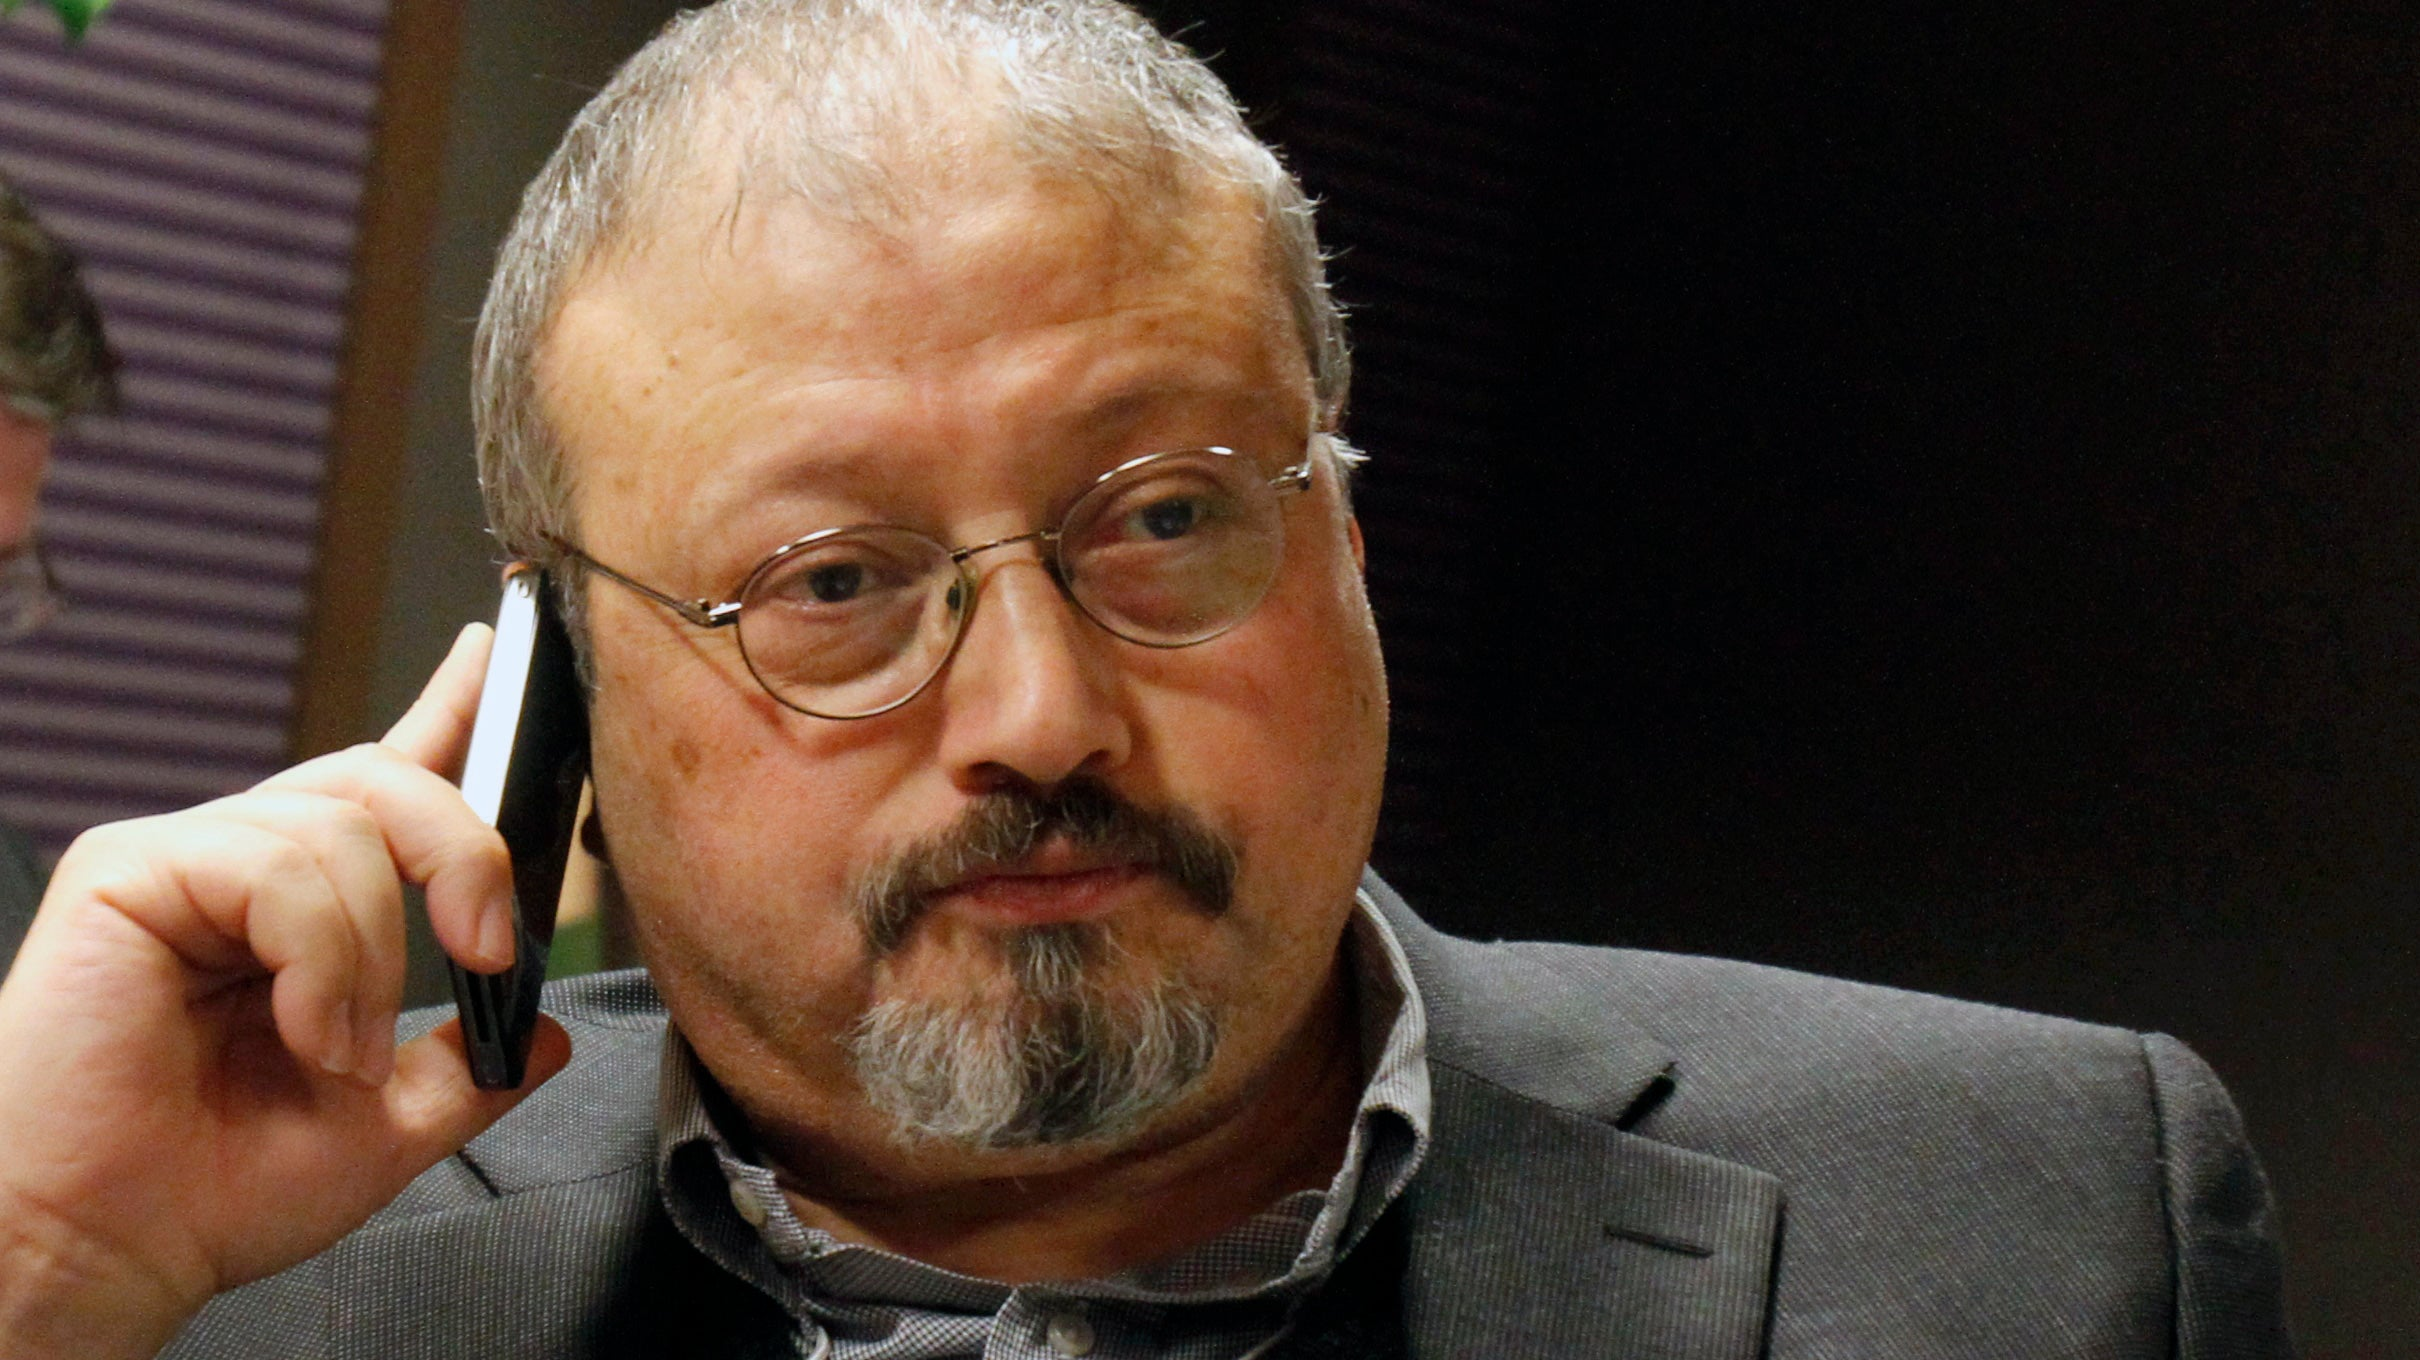 Israeli Cyber-Intelligence Firm Denies Role In Khashoggi Murder, But Won't 'Deny Or Confirm' Saudi Sales